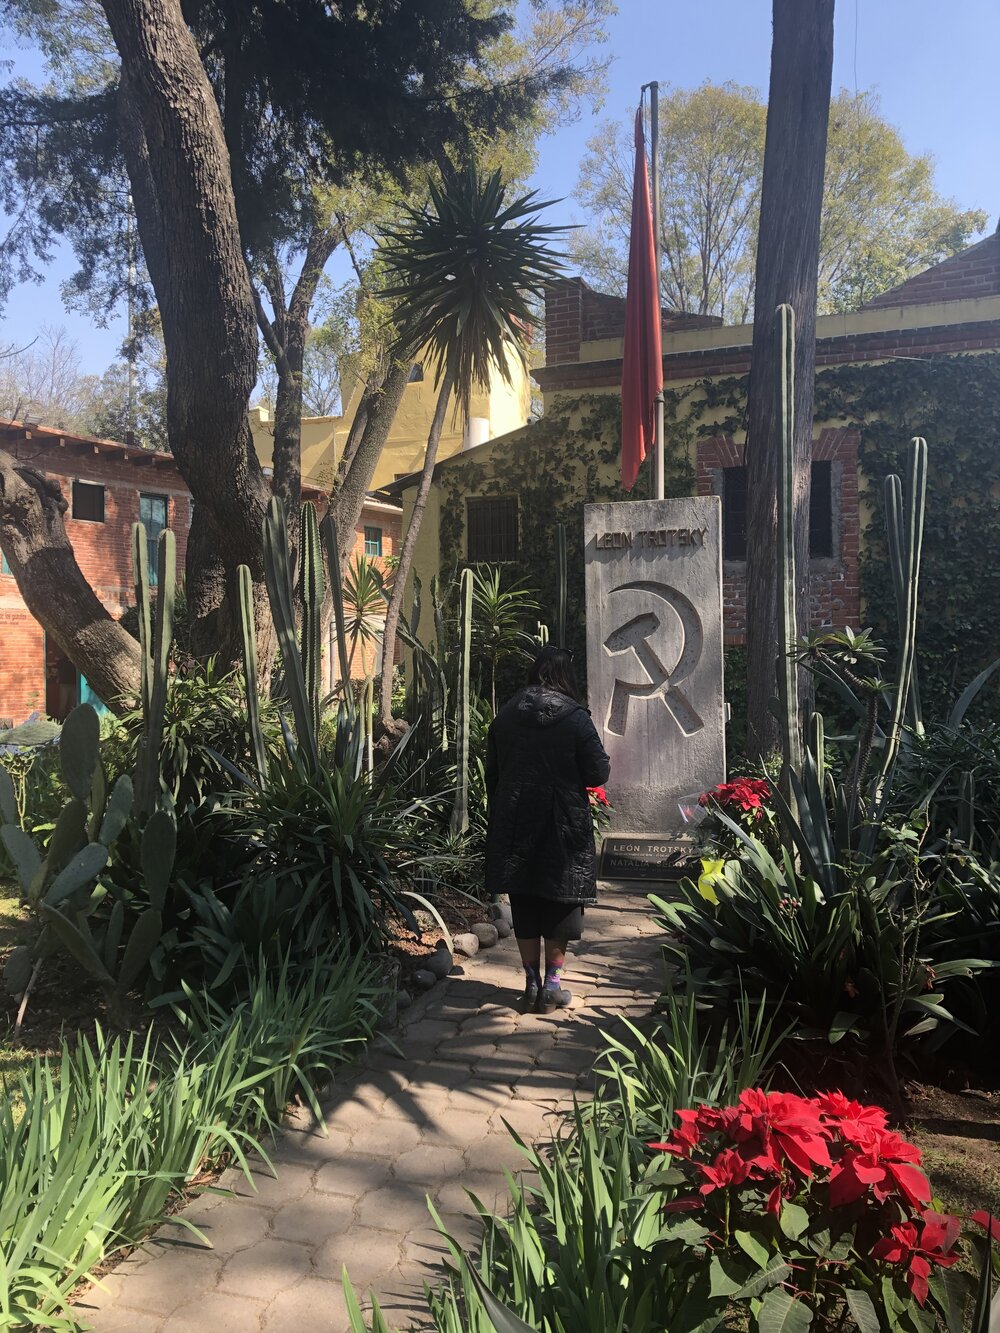 In the courtyard of the Trotsky House. Mexico City, January 2020. Photo by Molly Davis